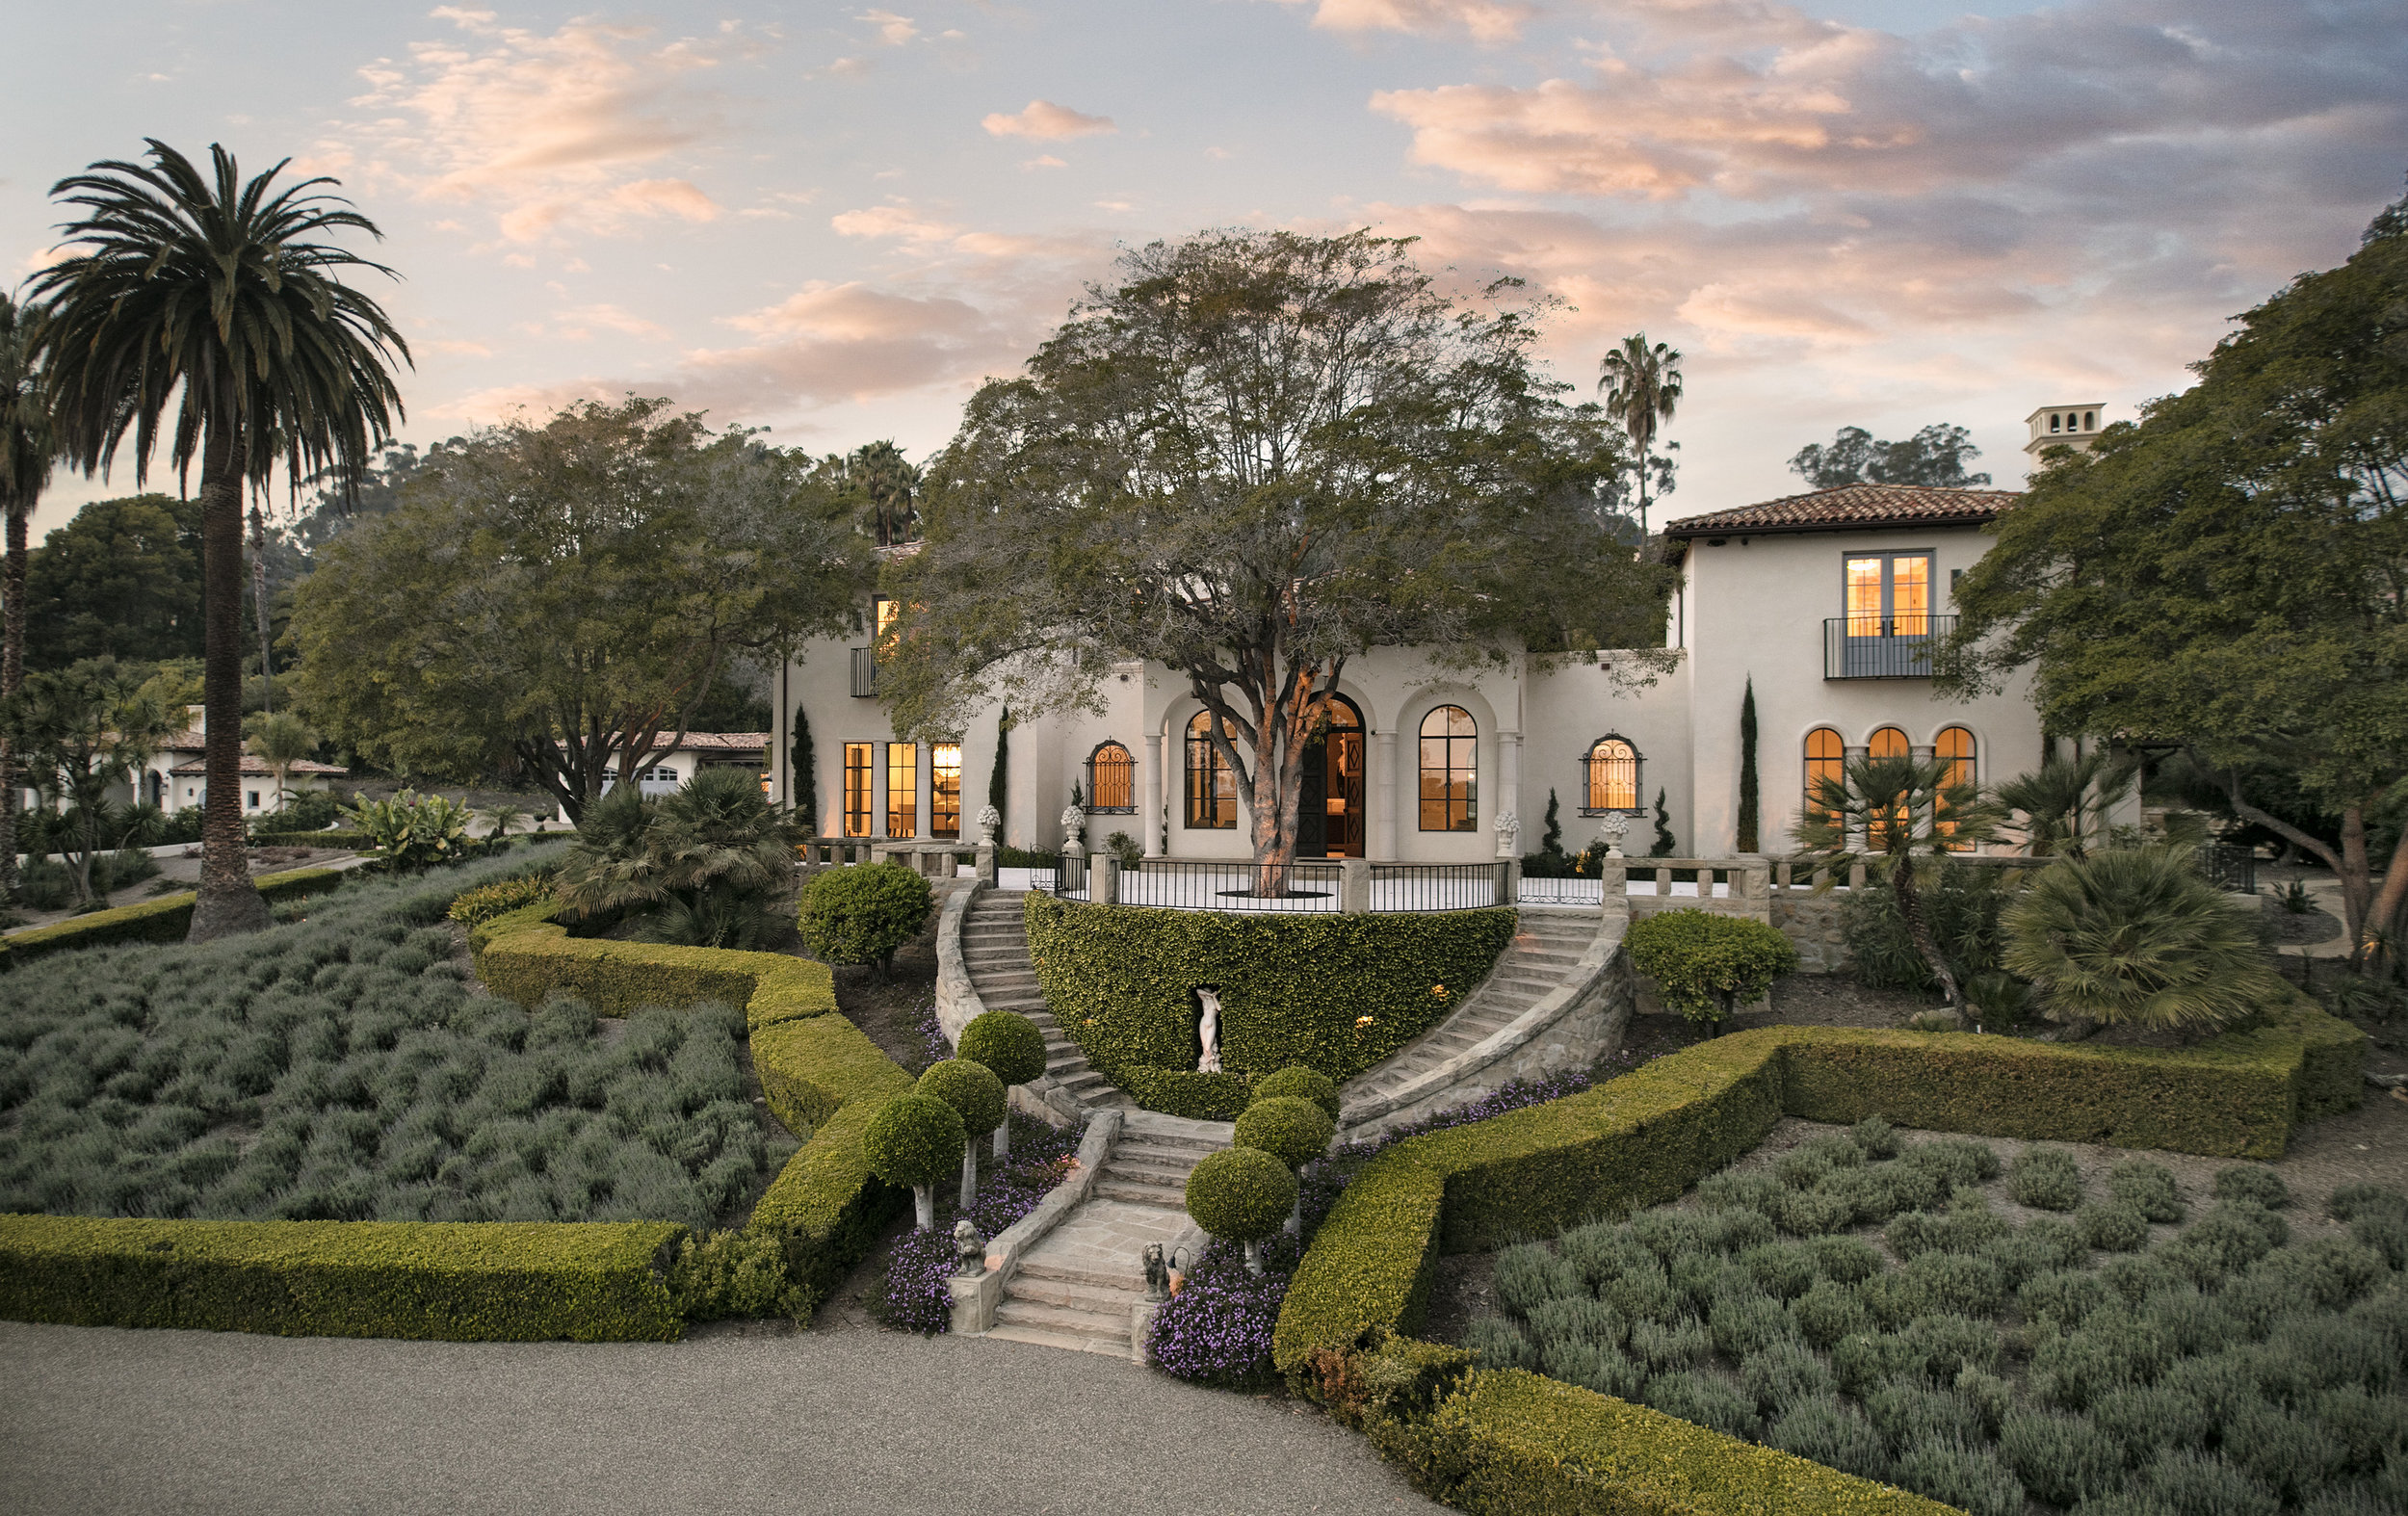 1084 Golf Road, Montecito - click to learn more